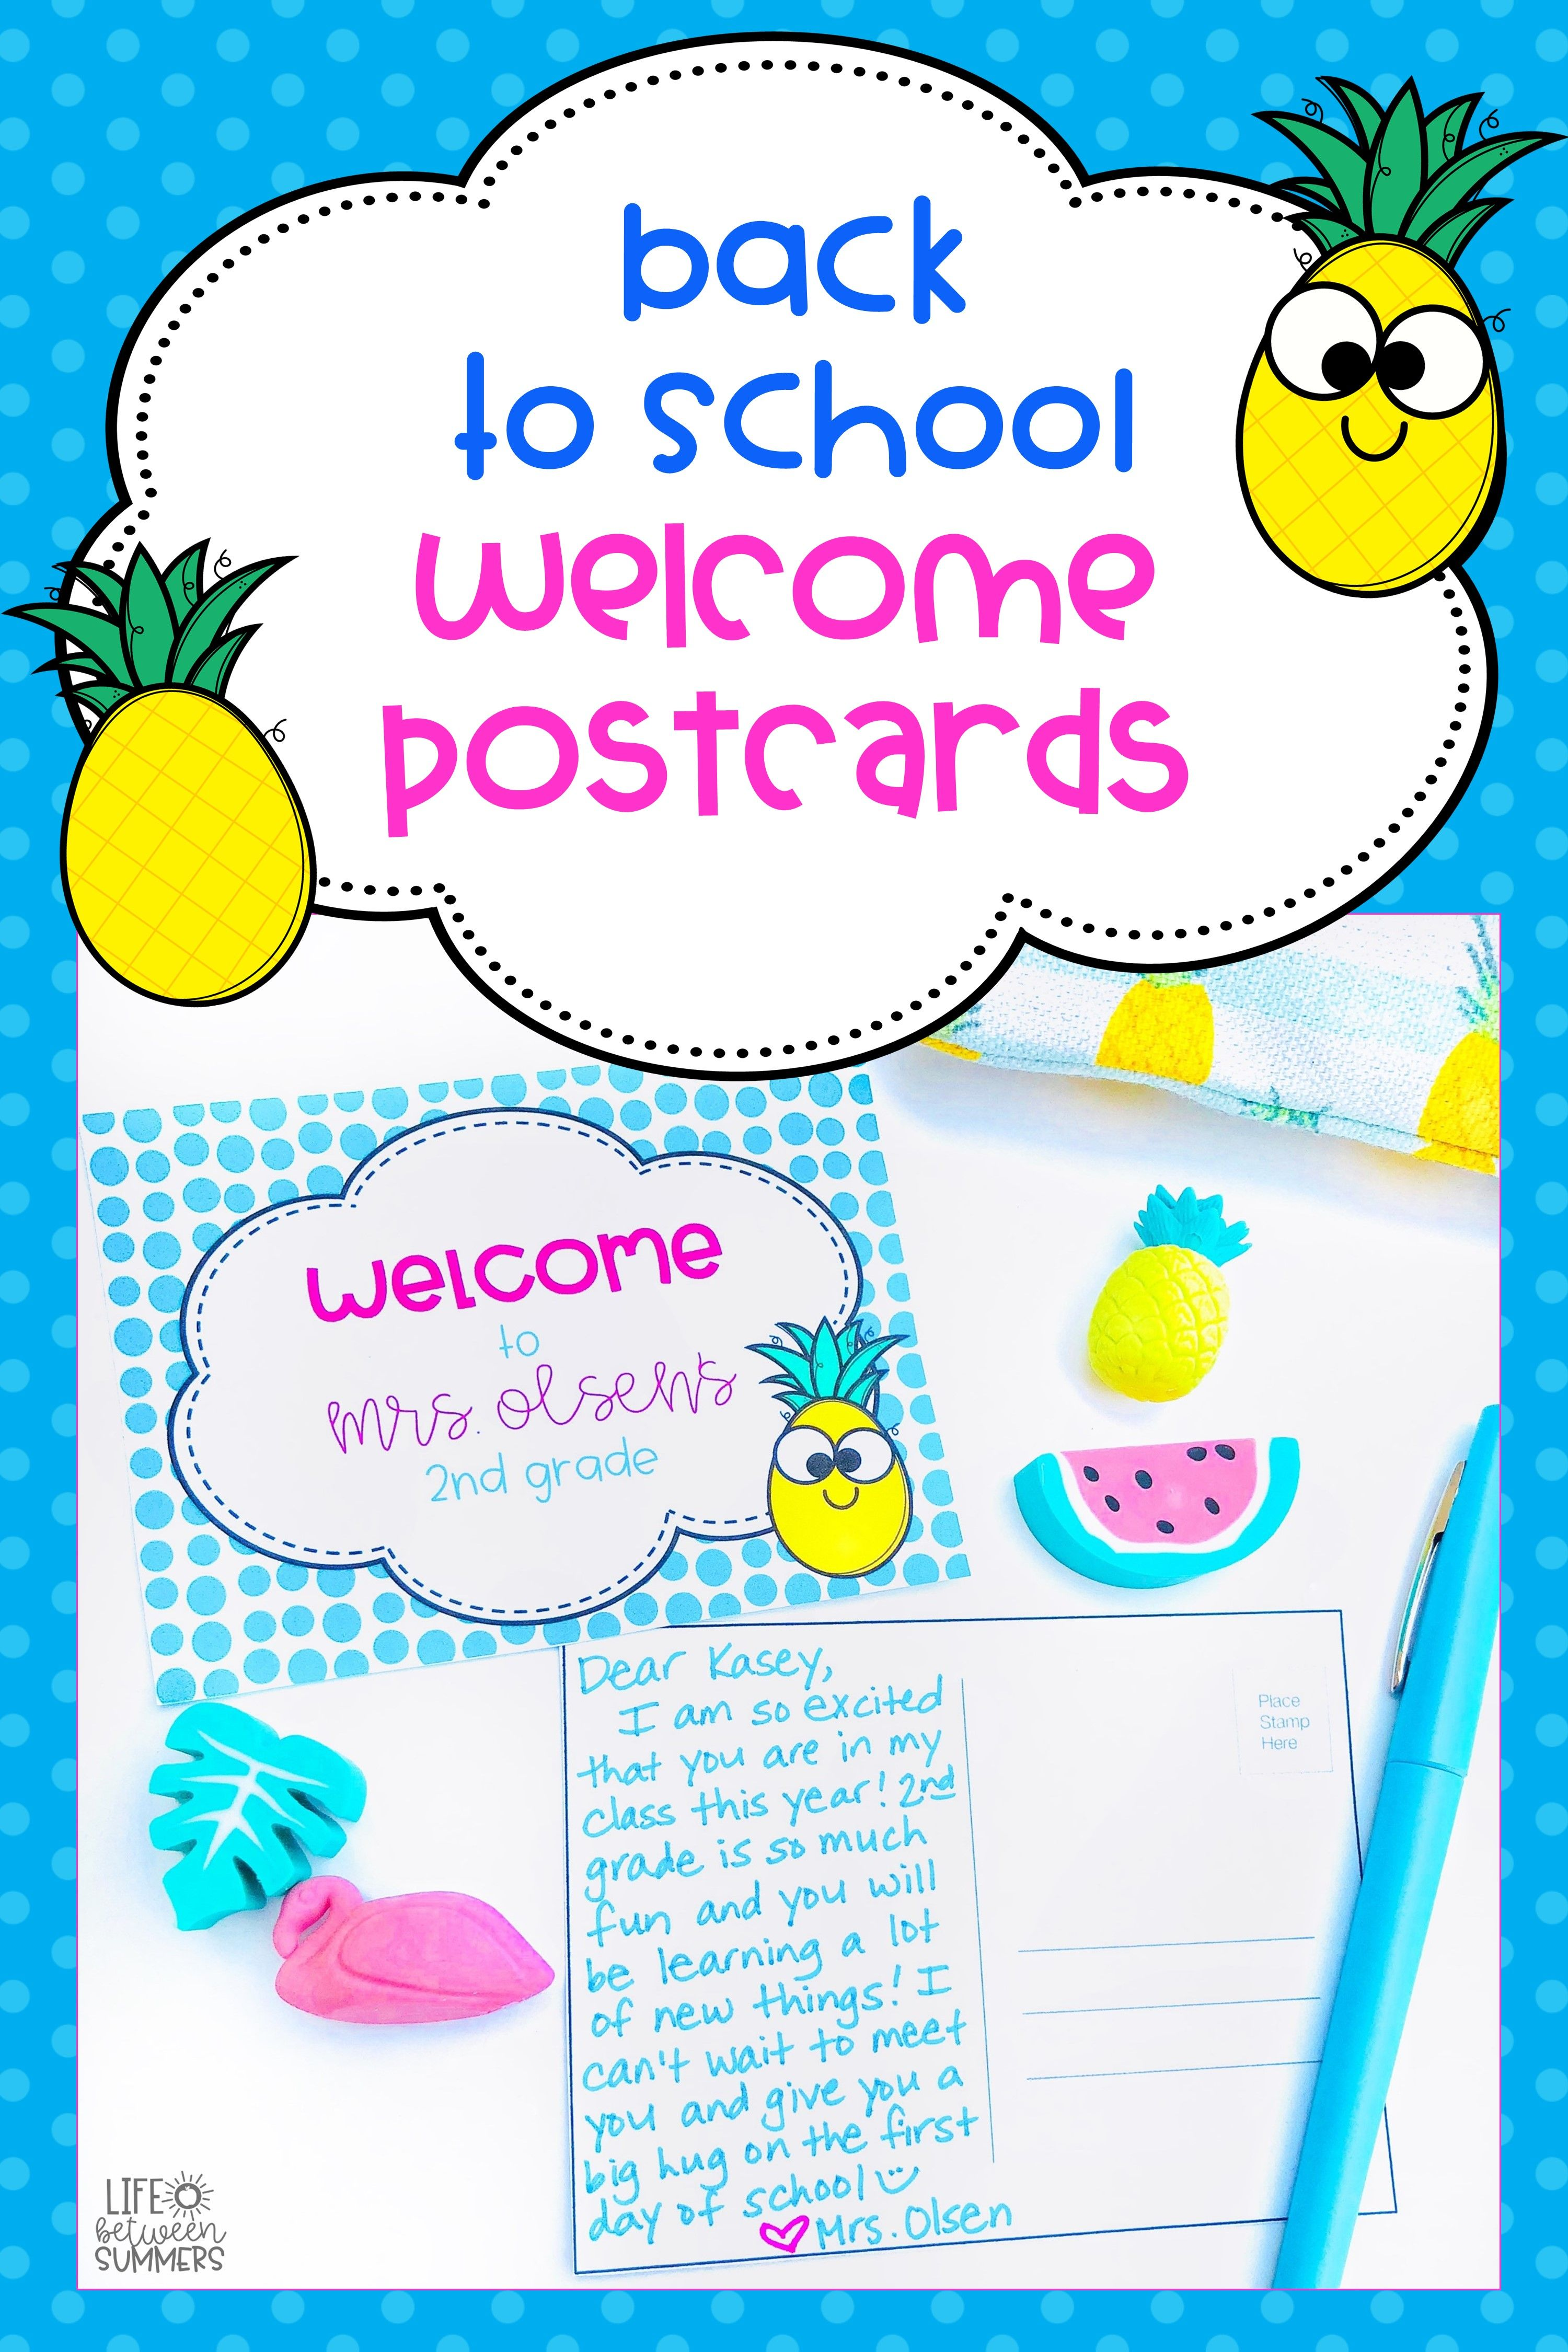 Back To School And End Of The Year Postcards From Teacher To